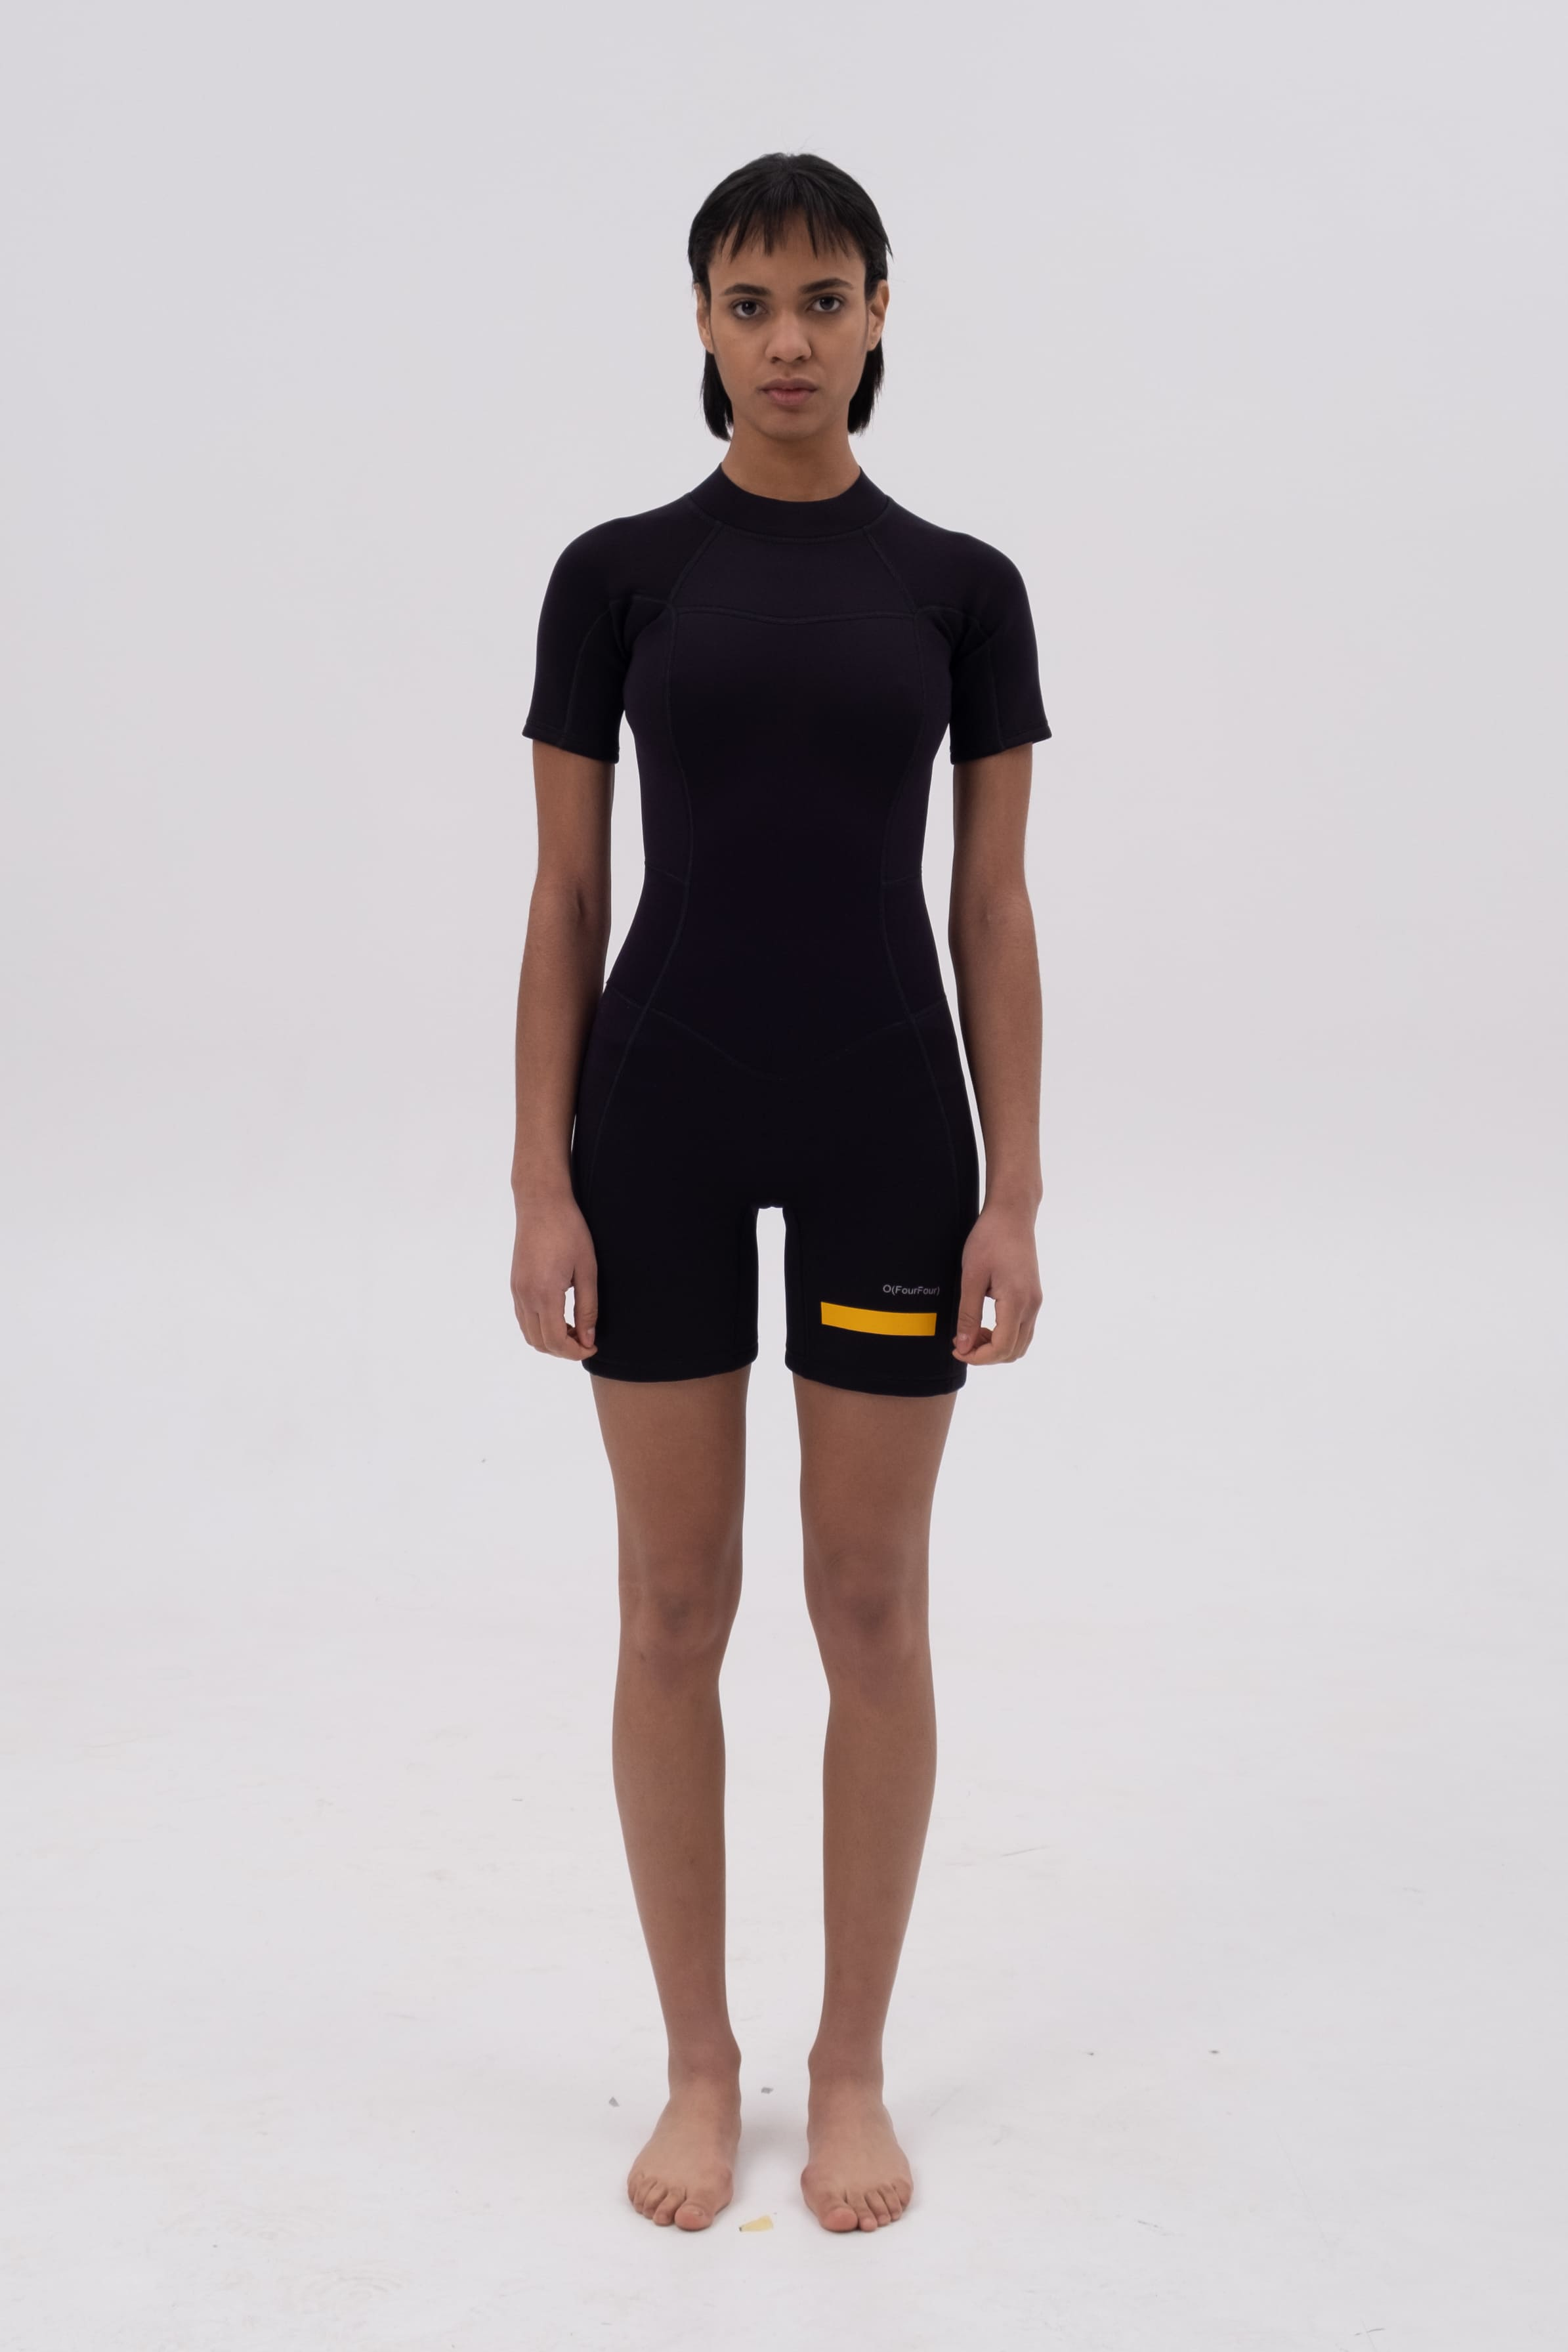 O(FOURFOUR) WETSUIT